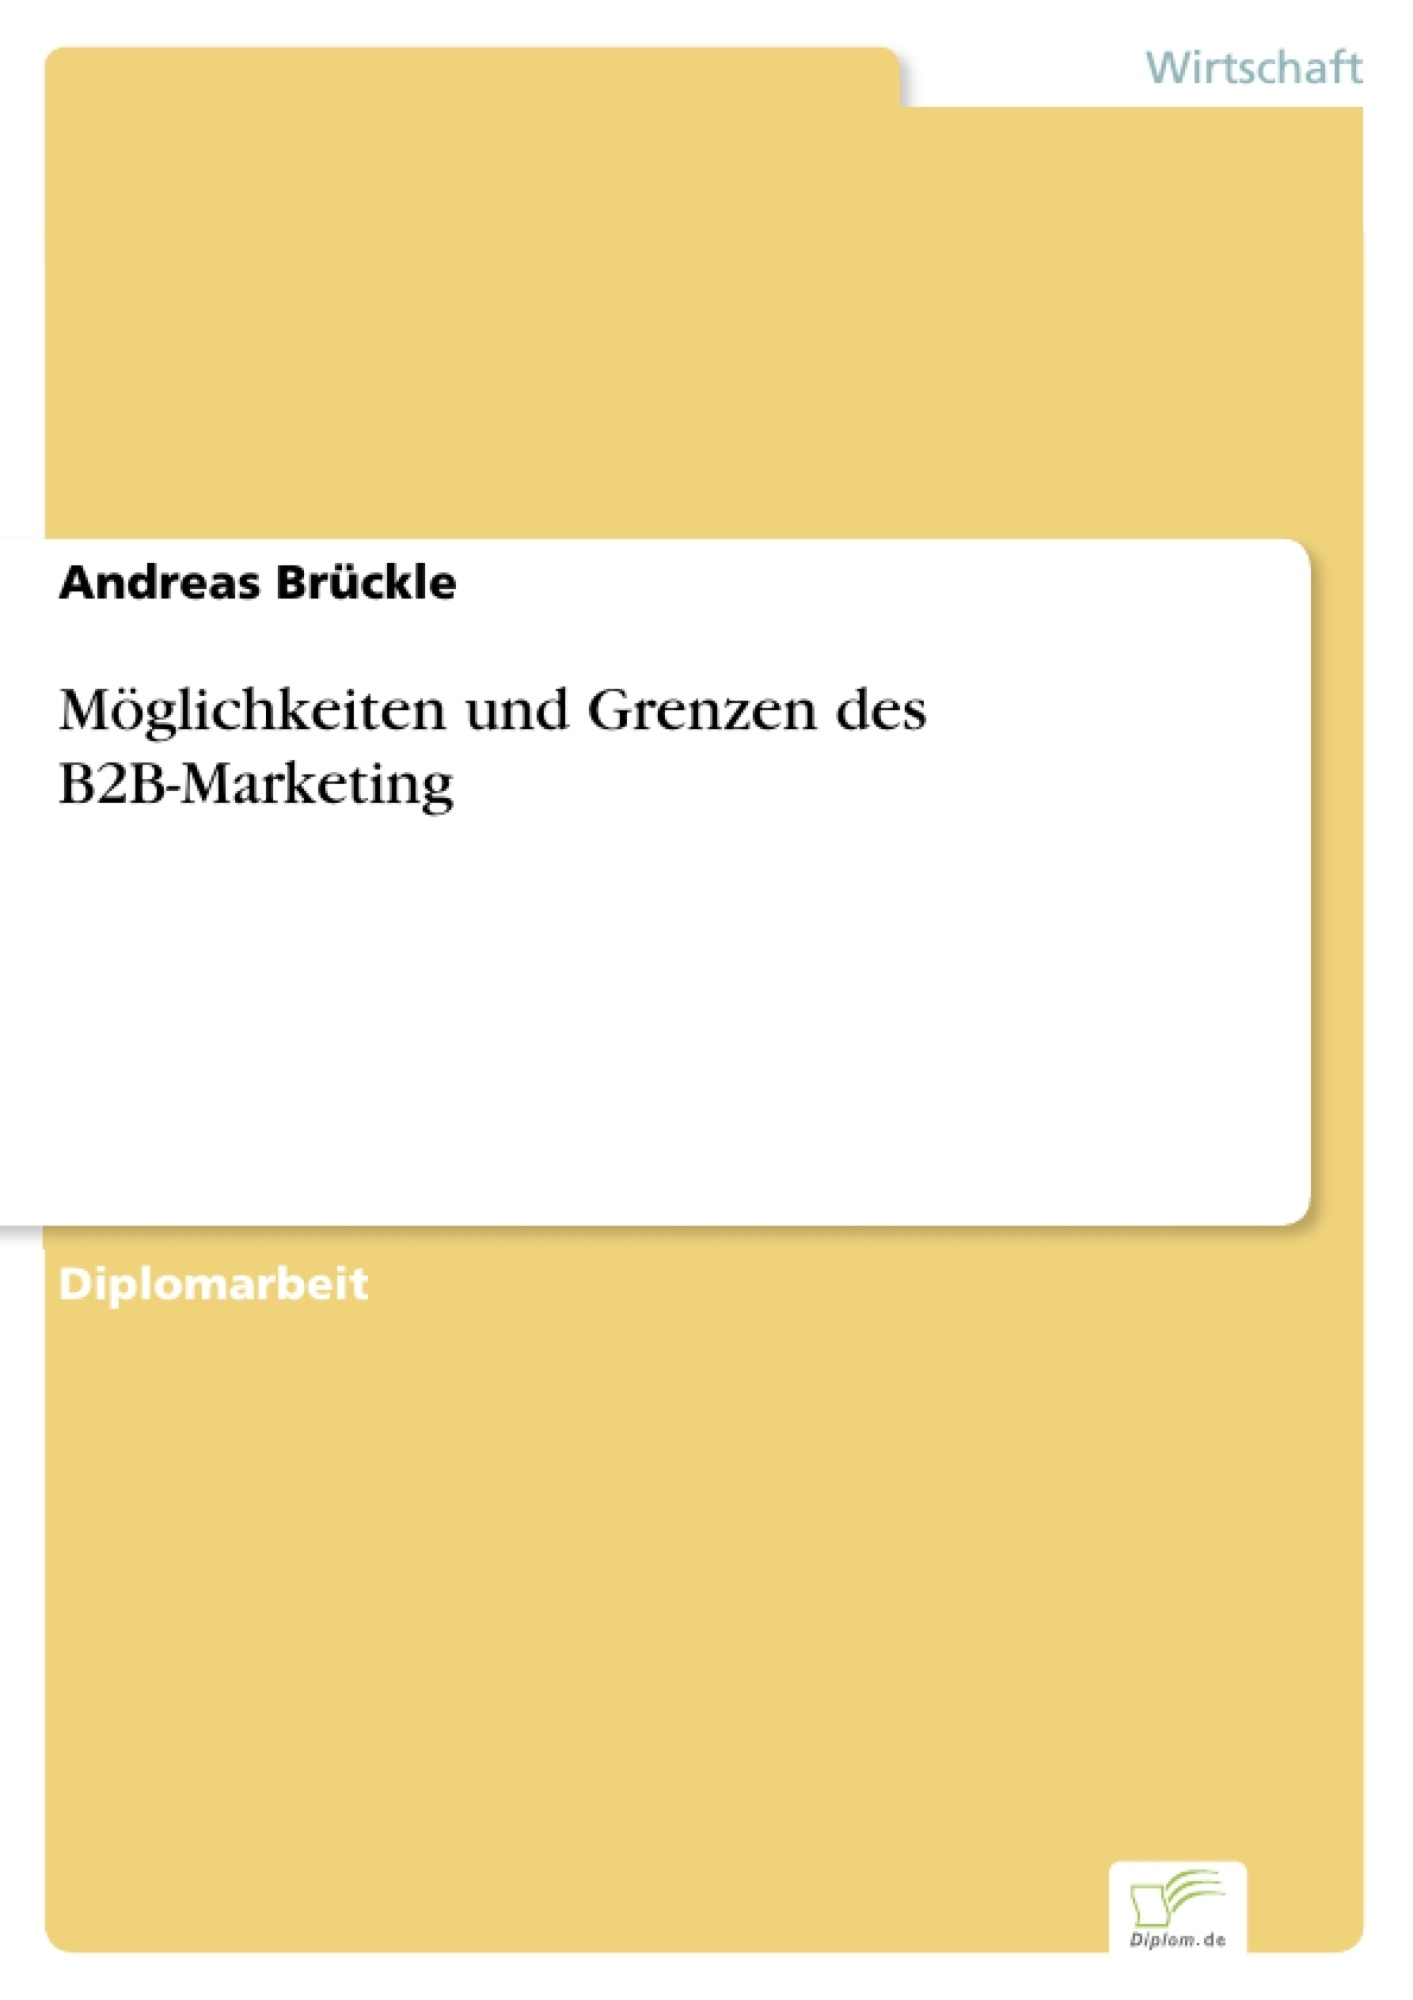 Bachelorarbeit online marketing b2b grammatik englische